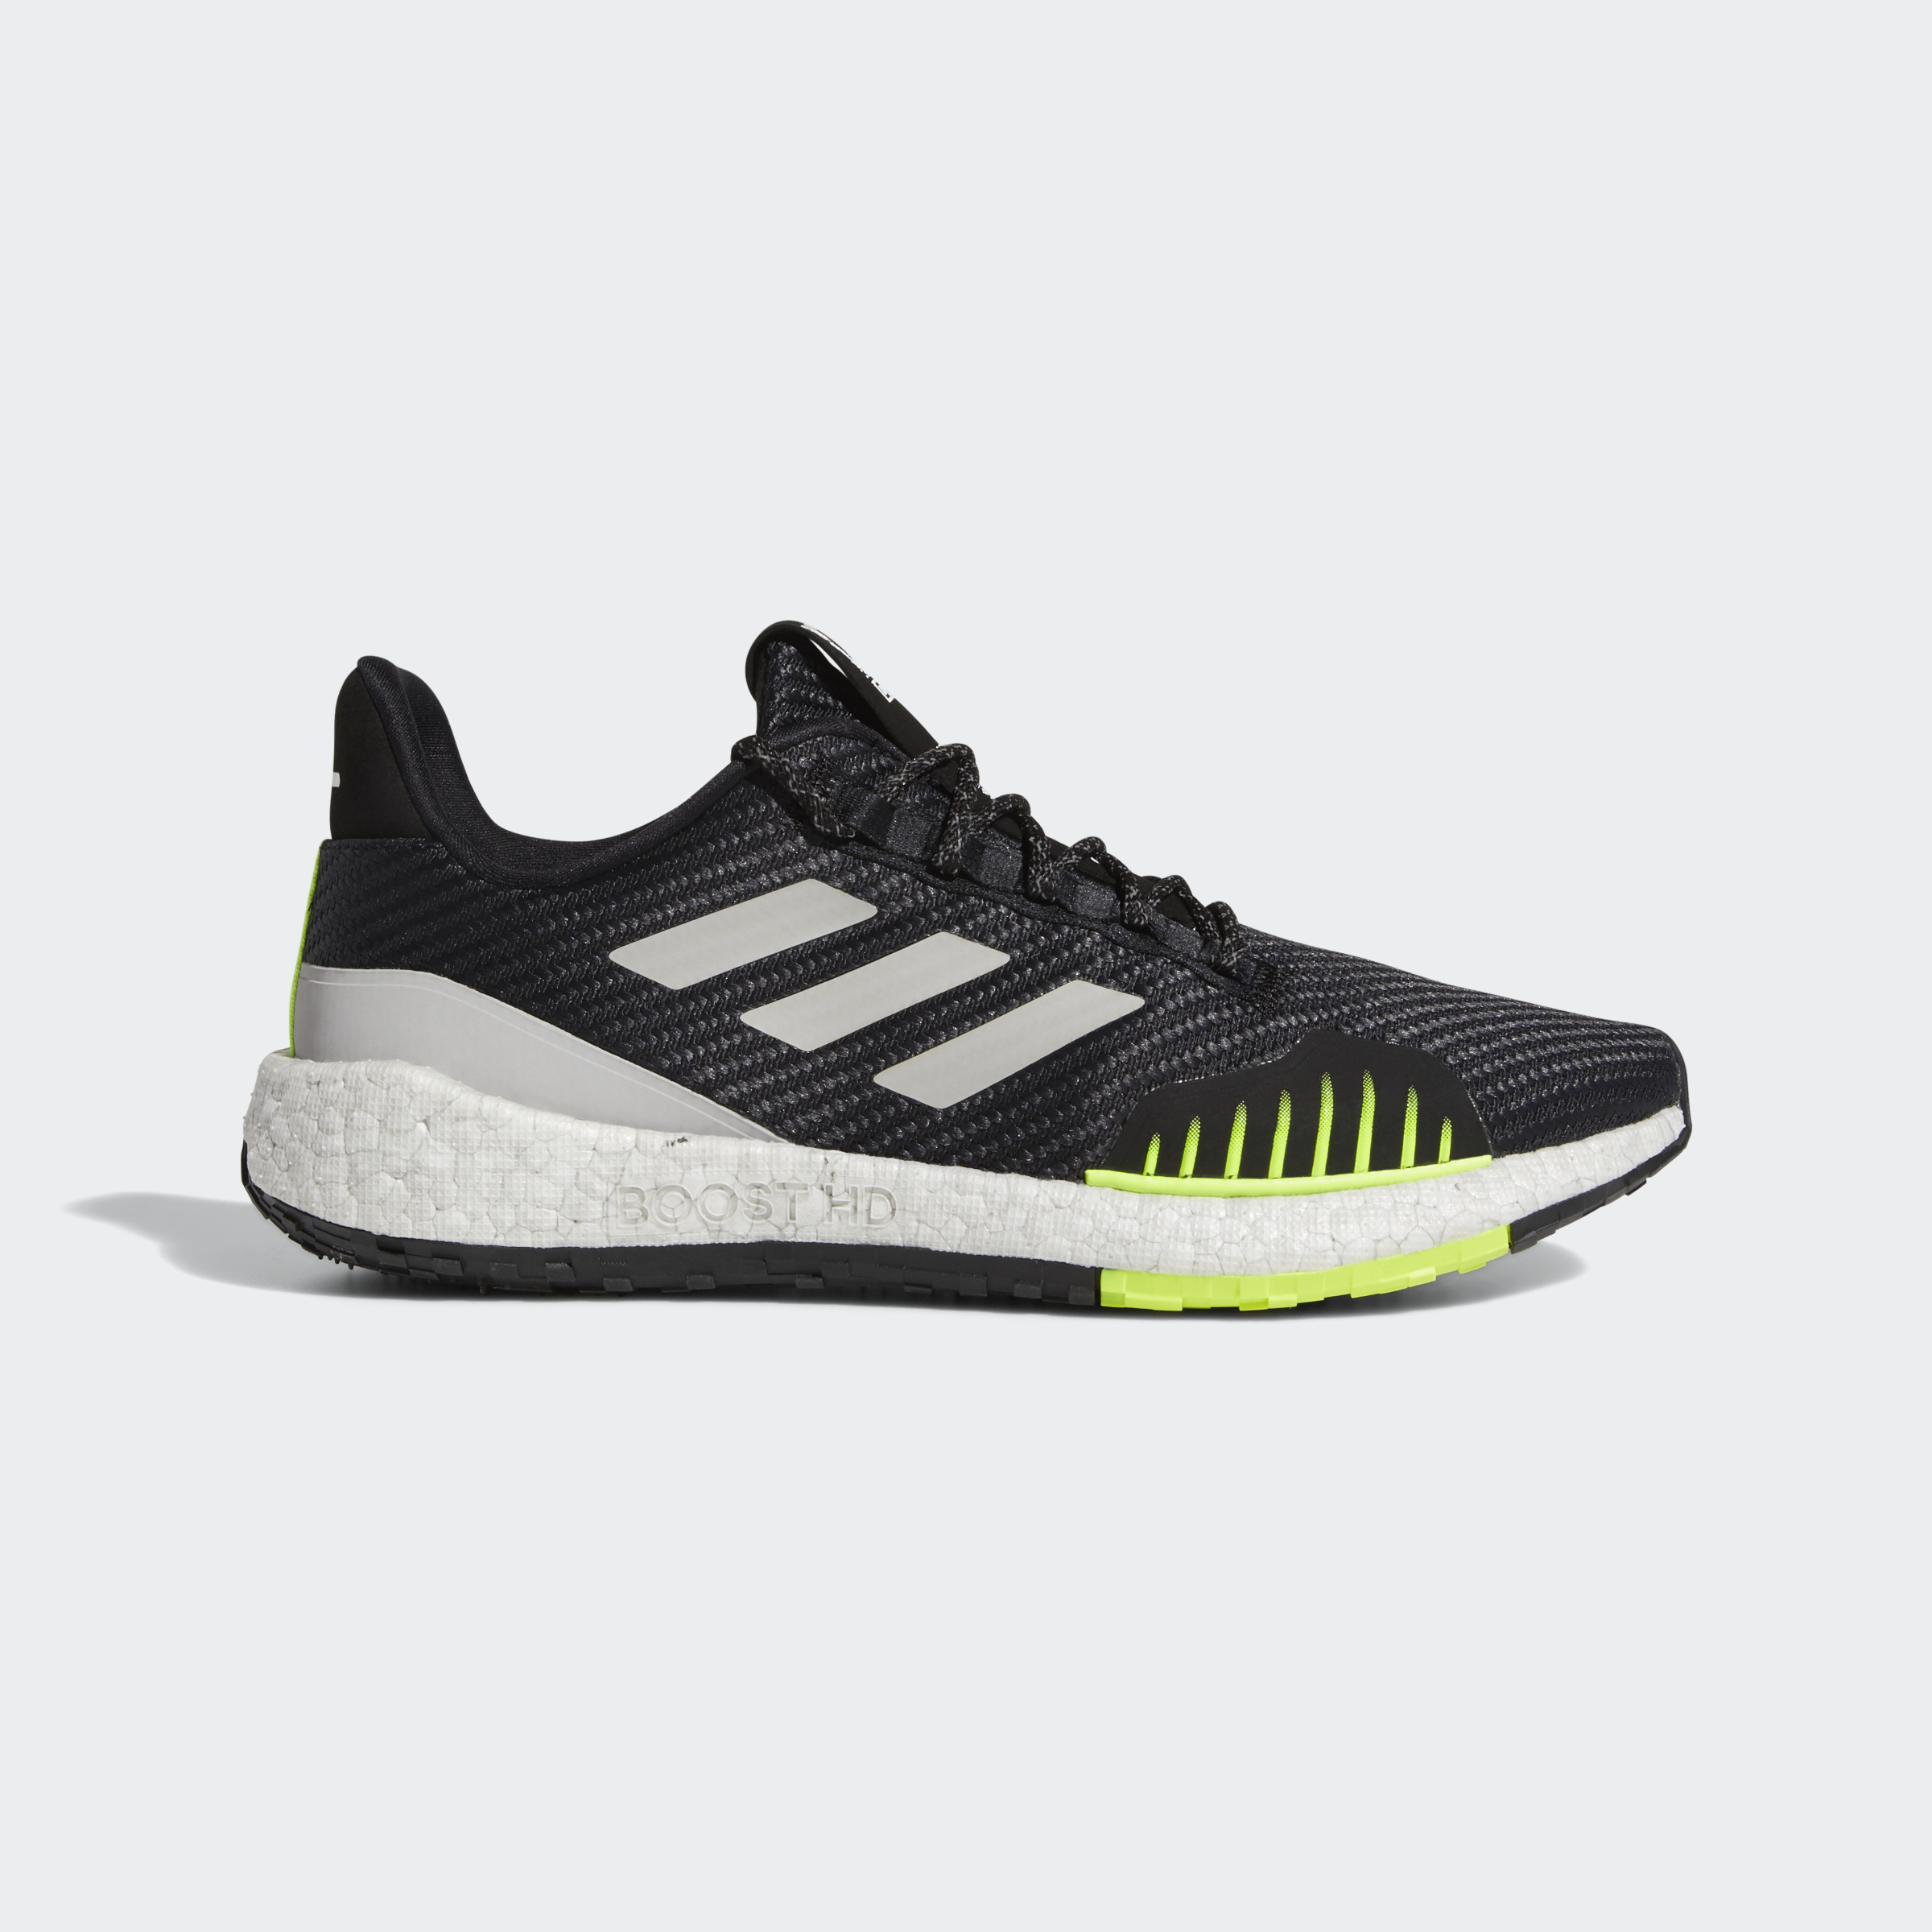 miniature 11 - adidas Pulseboost HD Winter Shoes  Athletic & Sneakers